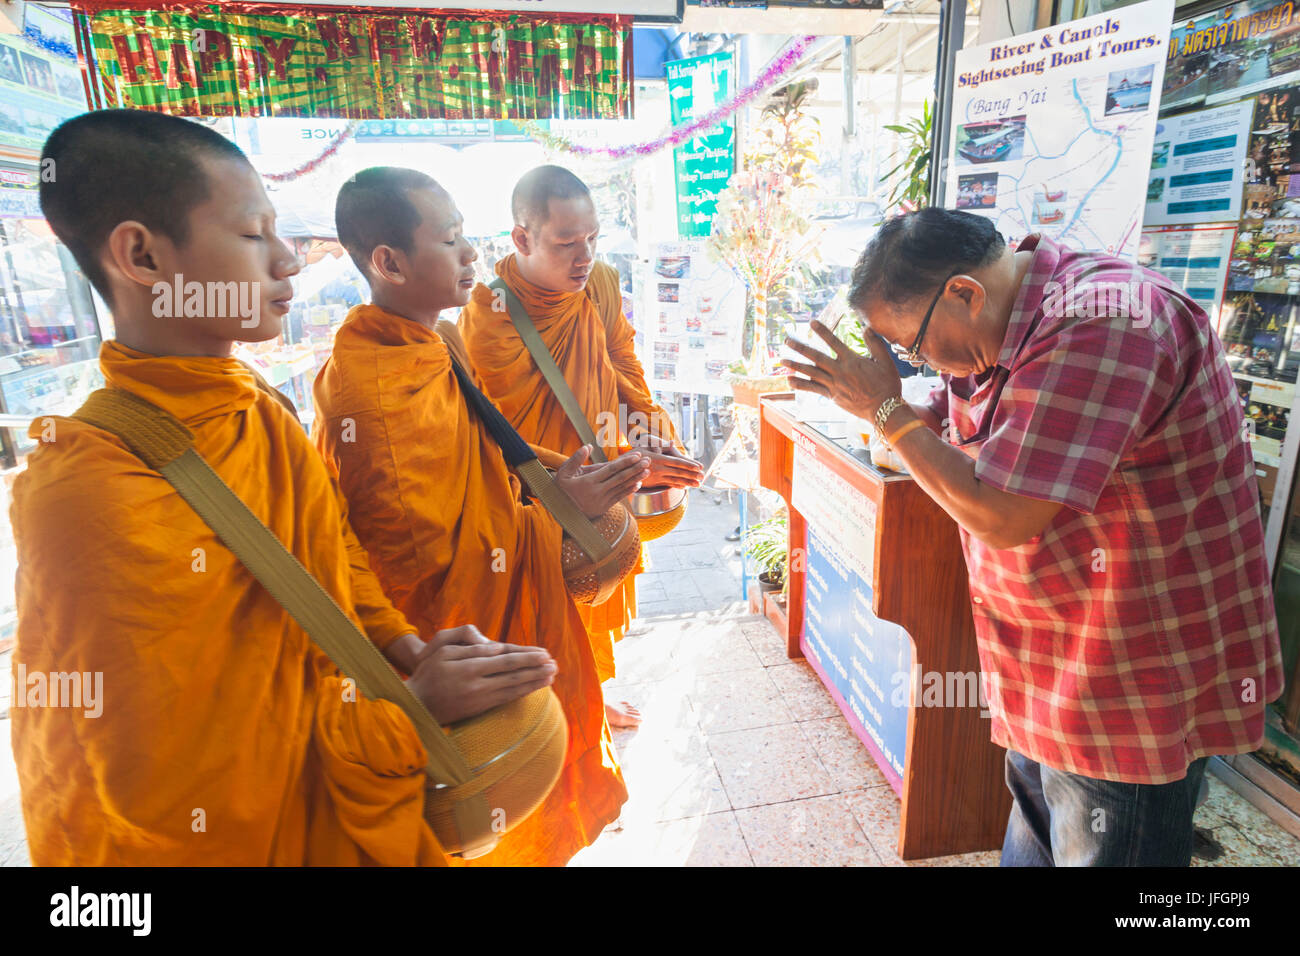 Thailand, Bangkok, Man Praying to Monk - Stock Image